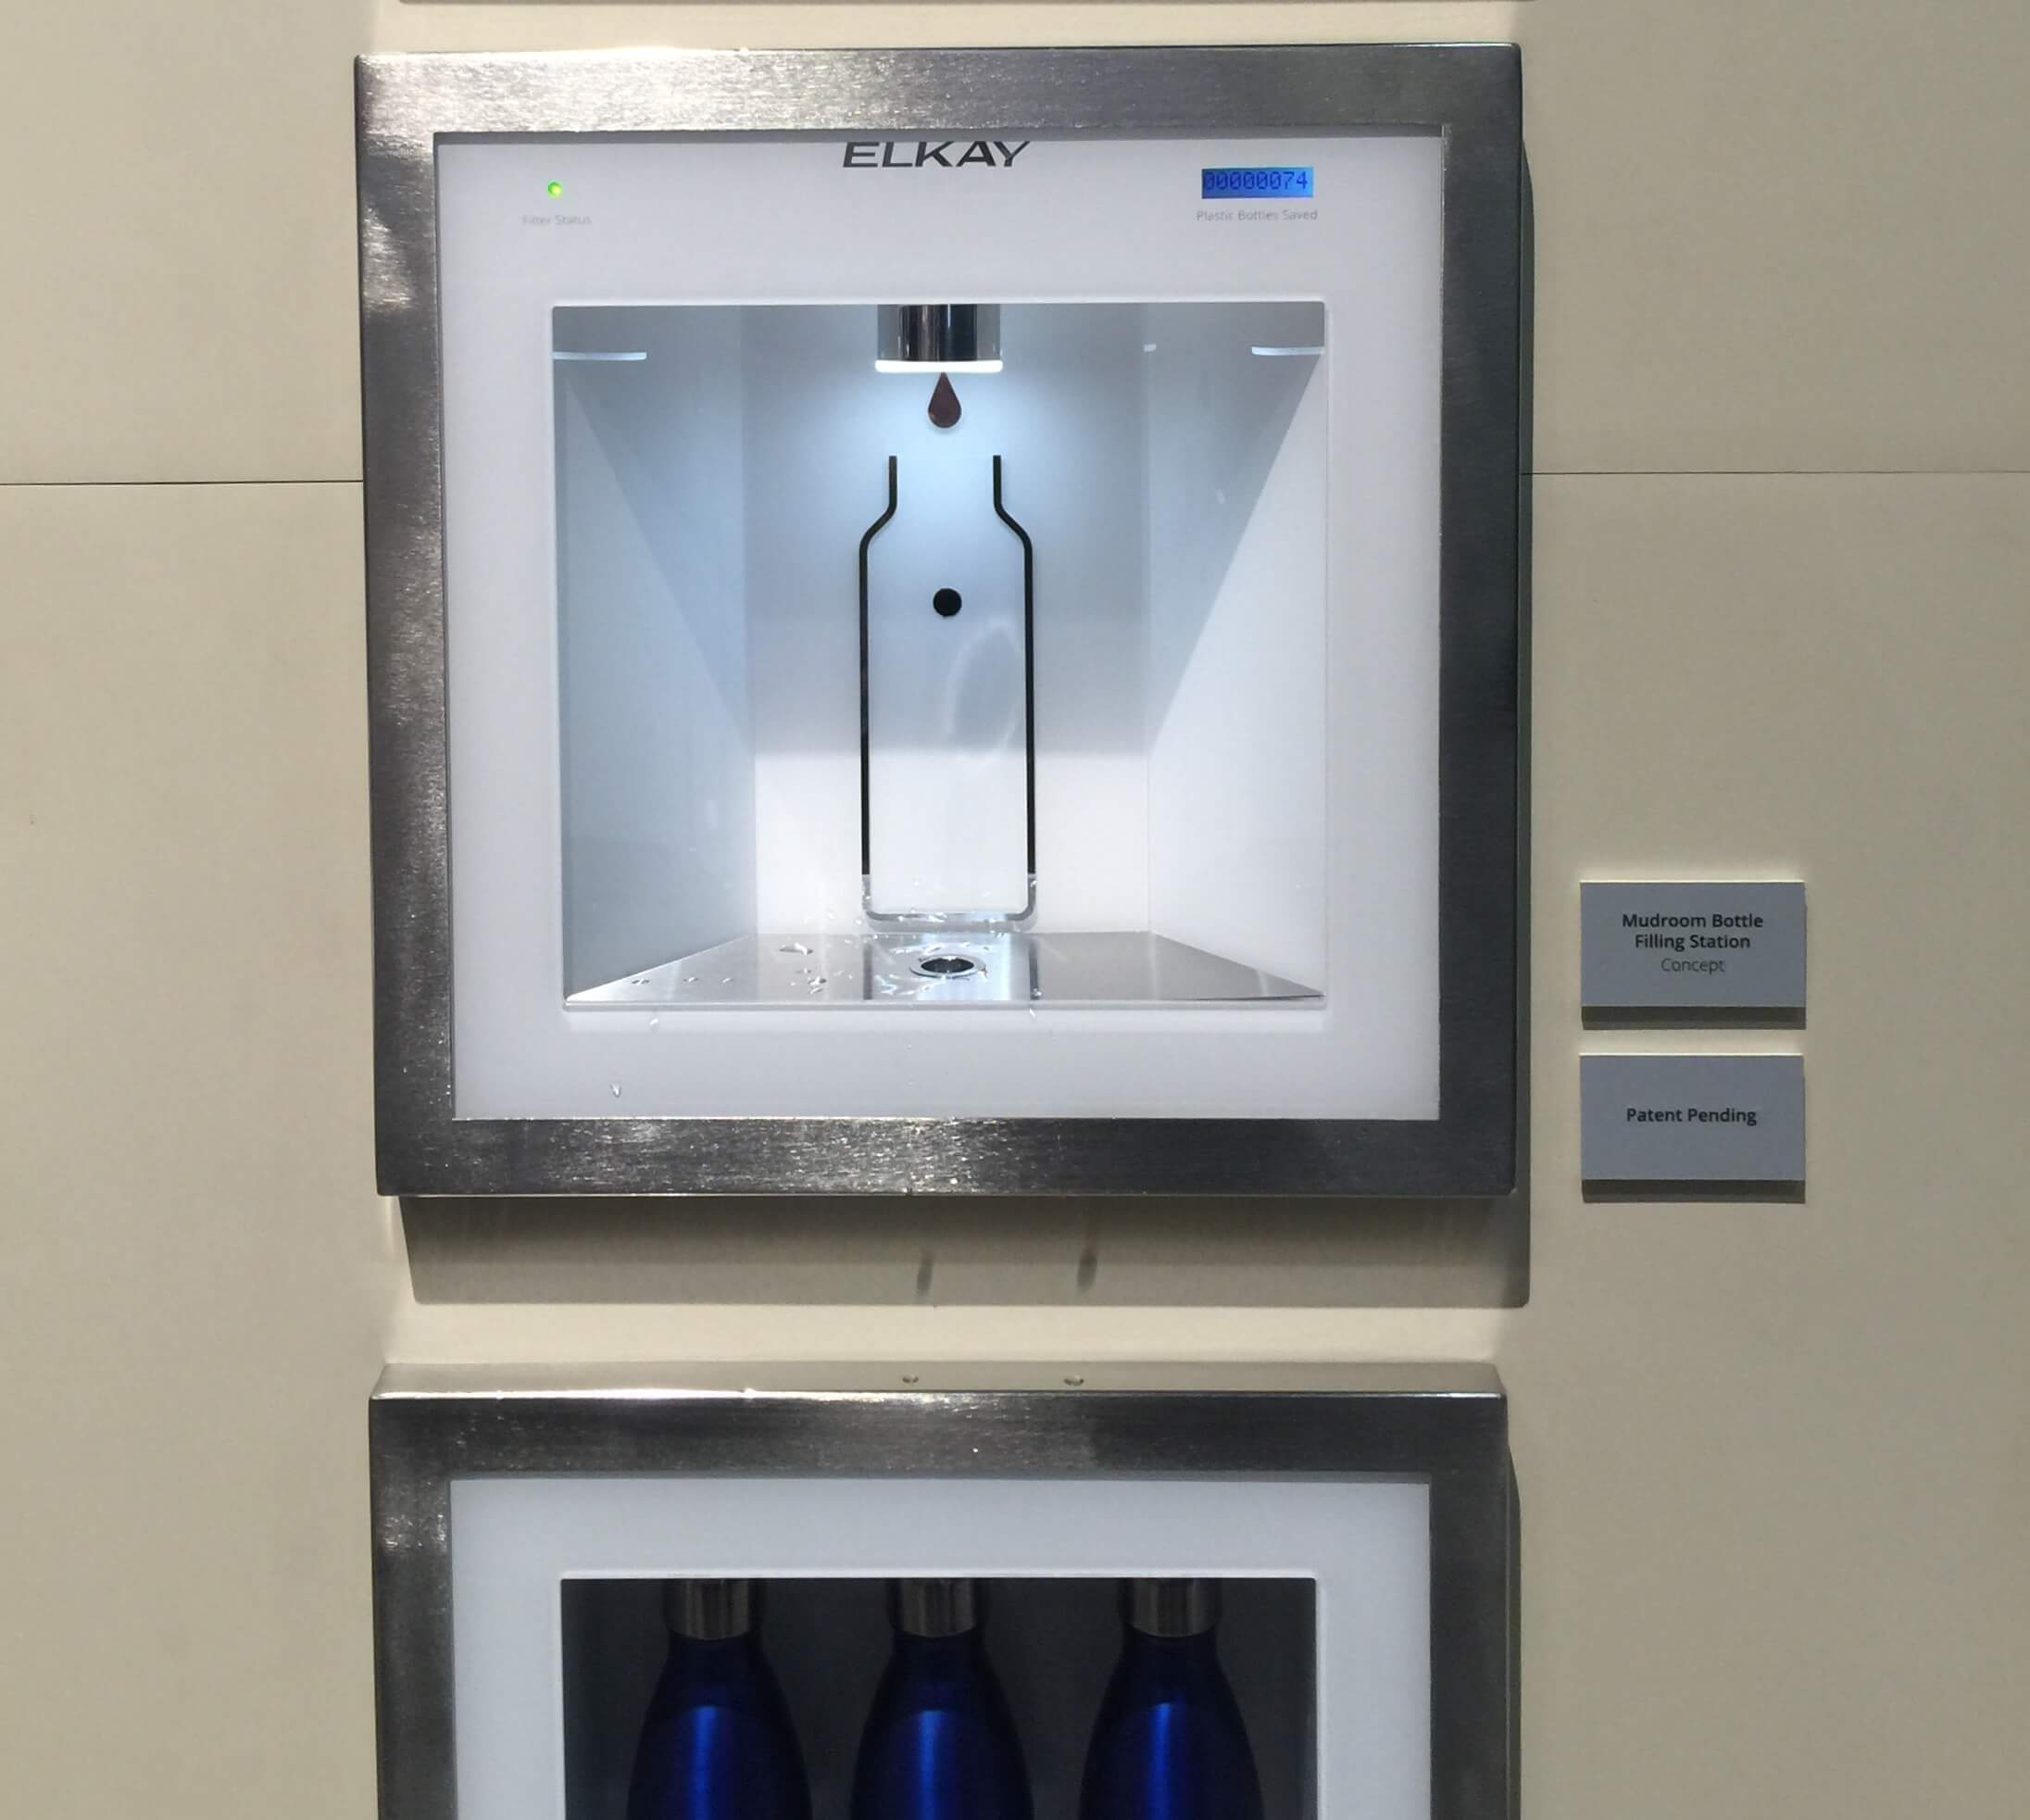 Elkay water bottle filler for a mudroom - KBIS, Kitchen and Bath Industry Show